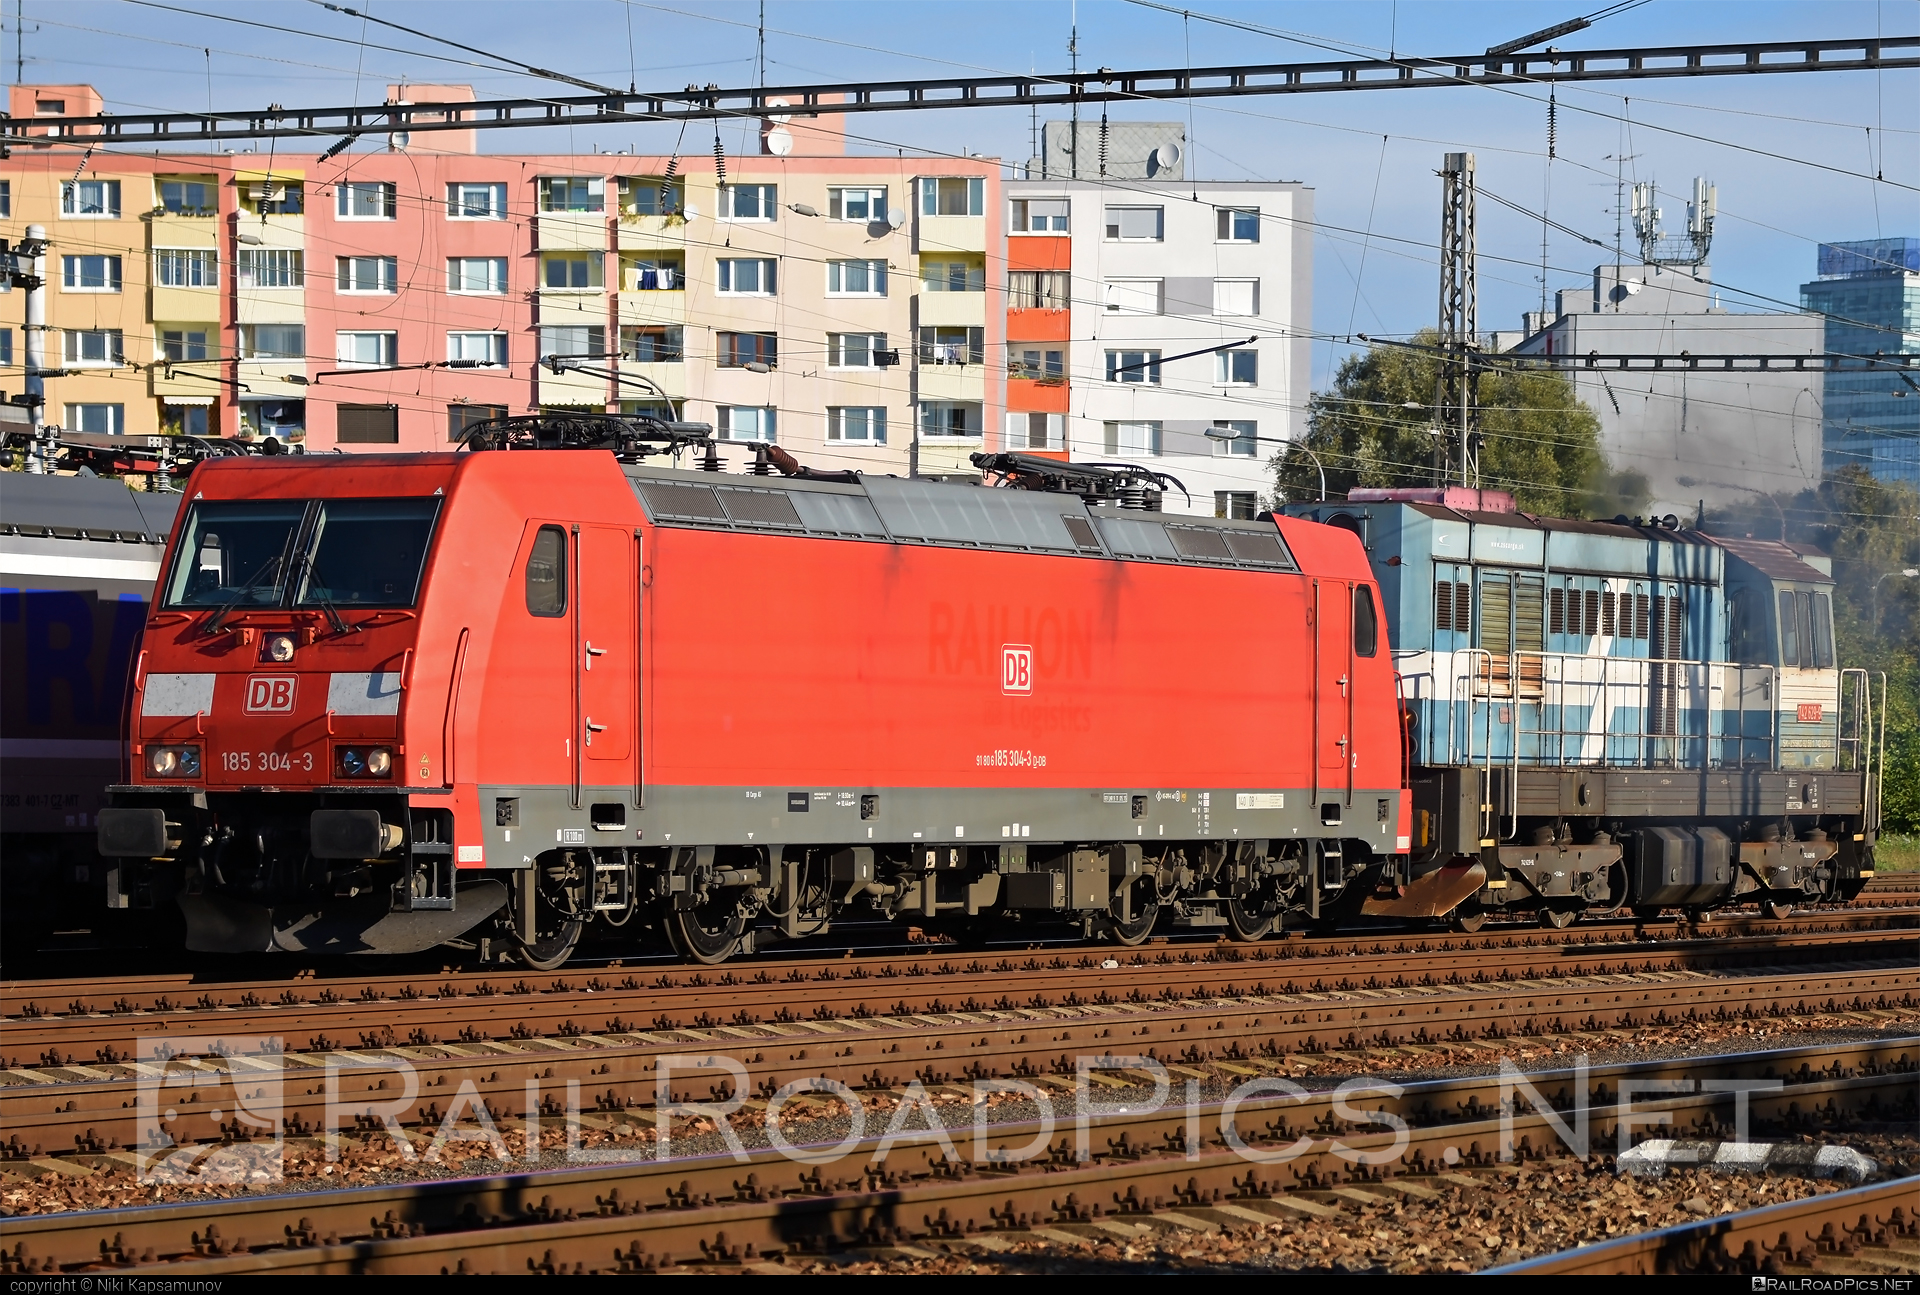 Bombardier TRAXX F140 AC2 - 185 304-3 operated by DB Cargo AG #bombardier #bombardiertraxx #db #dbcargo #dbcargoag #traxx #traxxf140 #traxxf140ac #traxxf140ac2